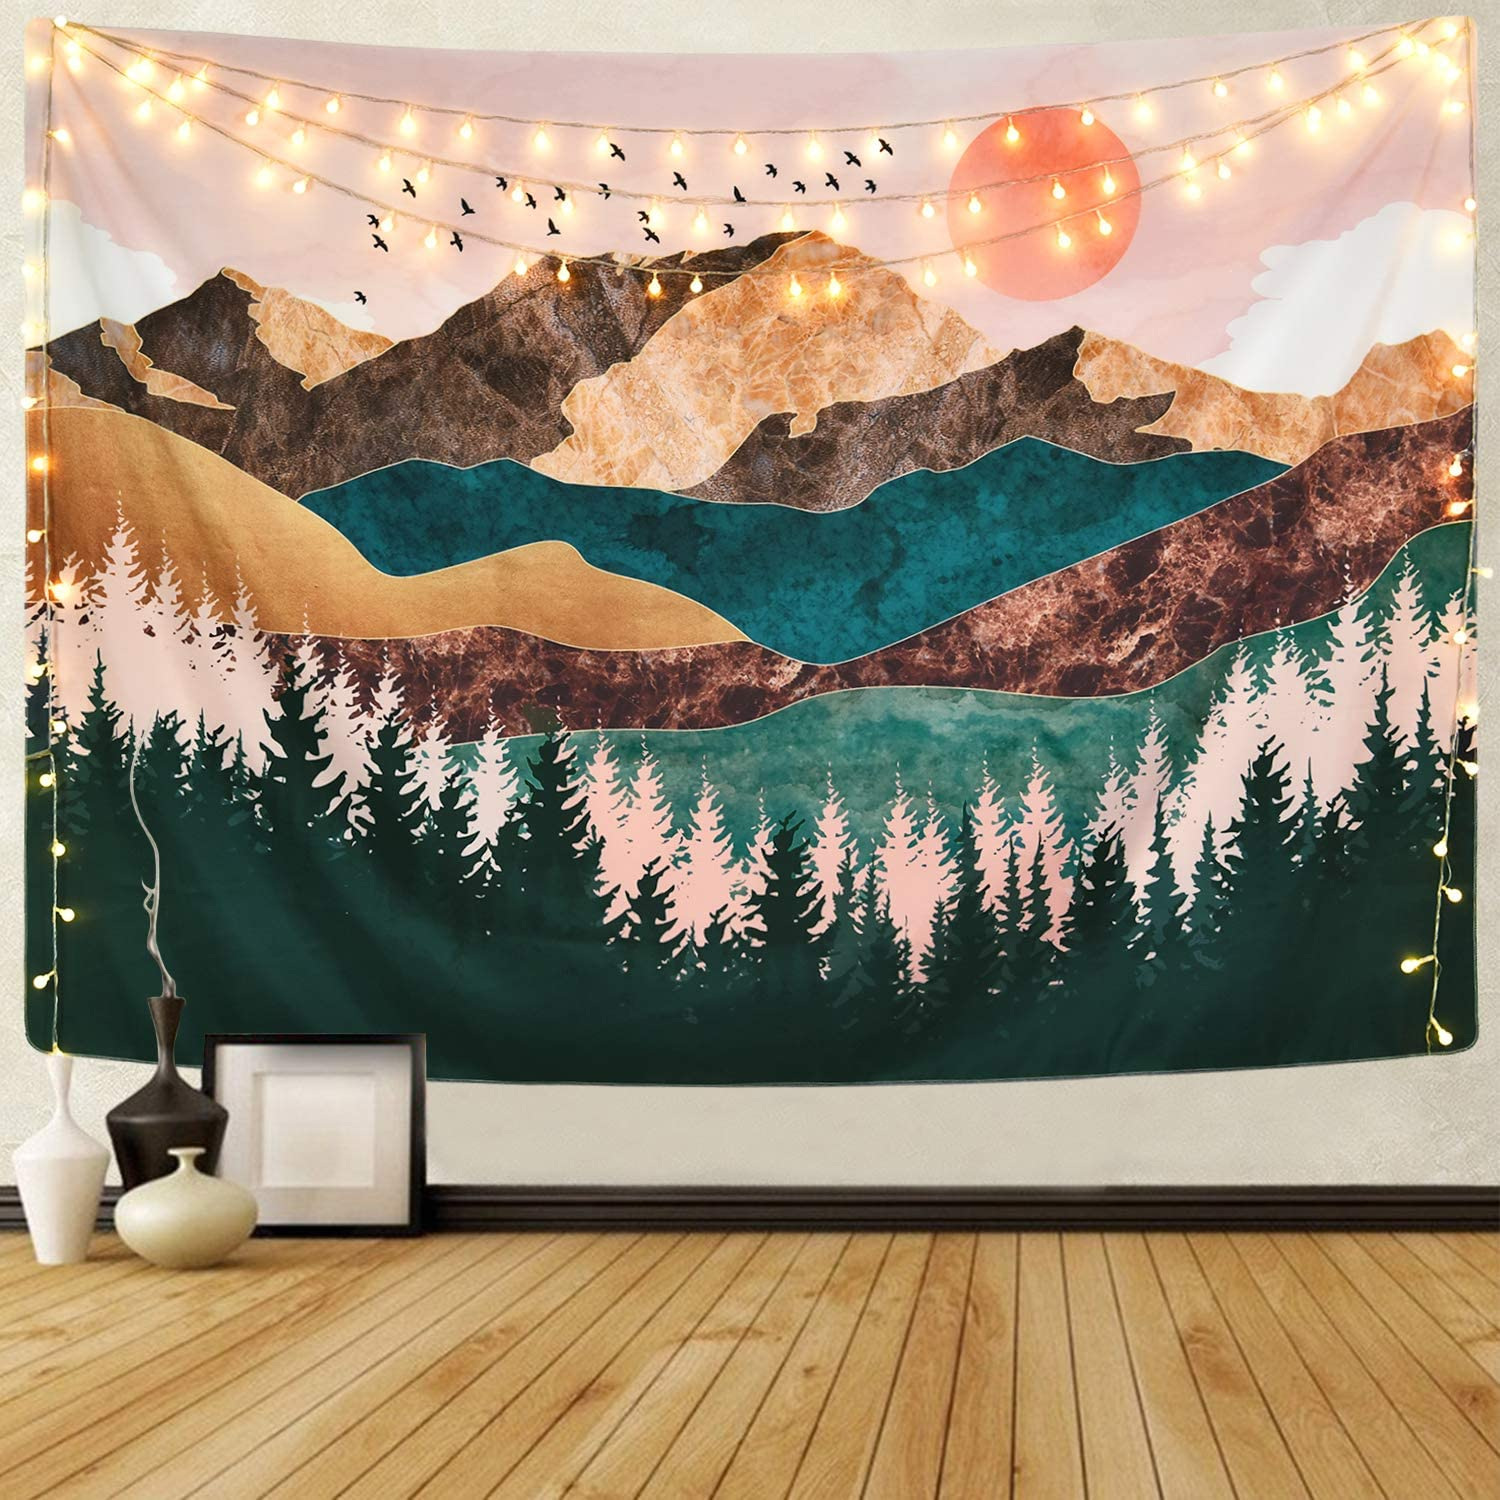 Sevenstars Mountain Tapestry Forest Tree Tapestry Sunset Tapestry Nature Landscape Tapestry Wall Hanging for Room(51.2 x 59.1 inches)